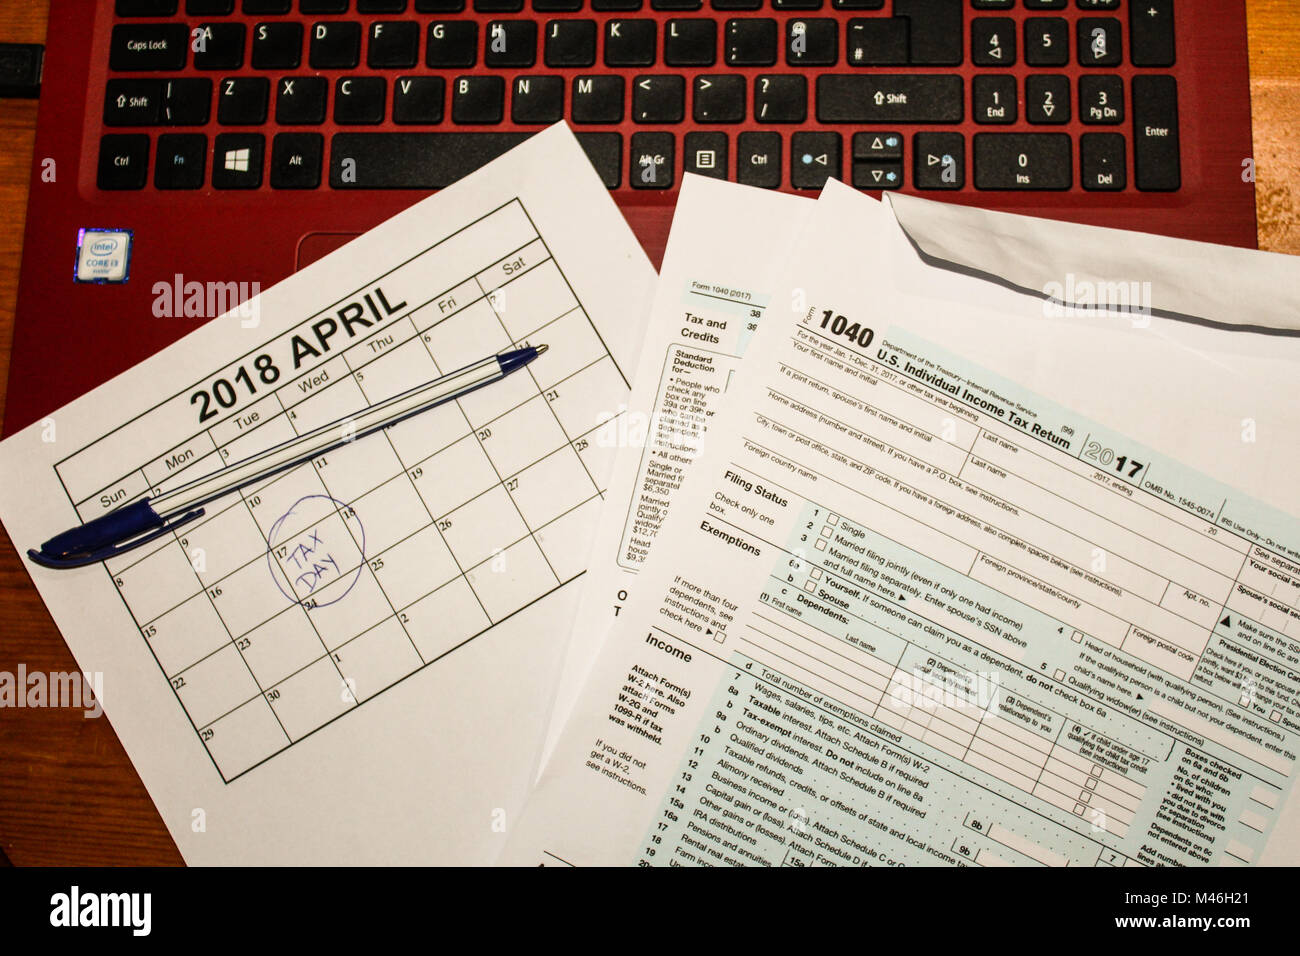 Calendar and form 1040 income tax form for 2017 showing tax day for filing is April 17 2018 - Stock Image